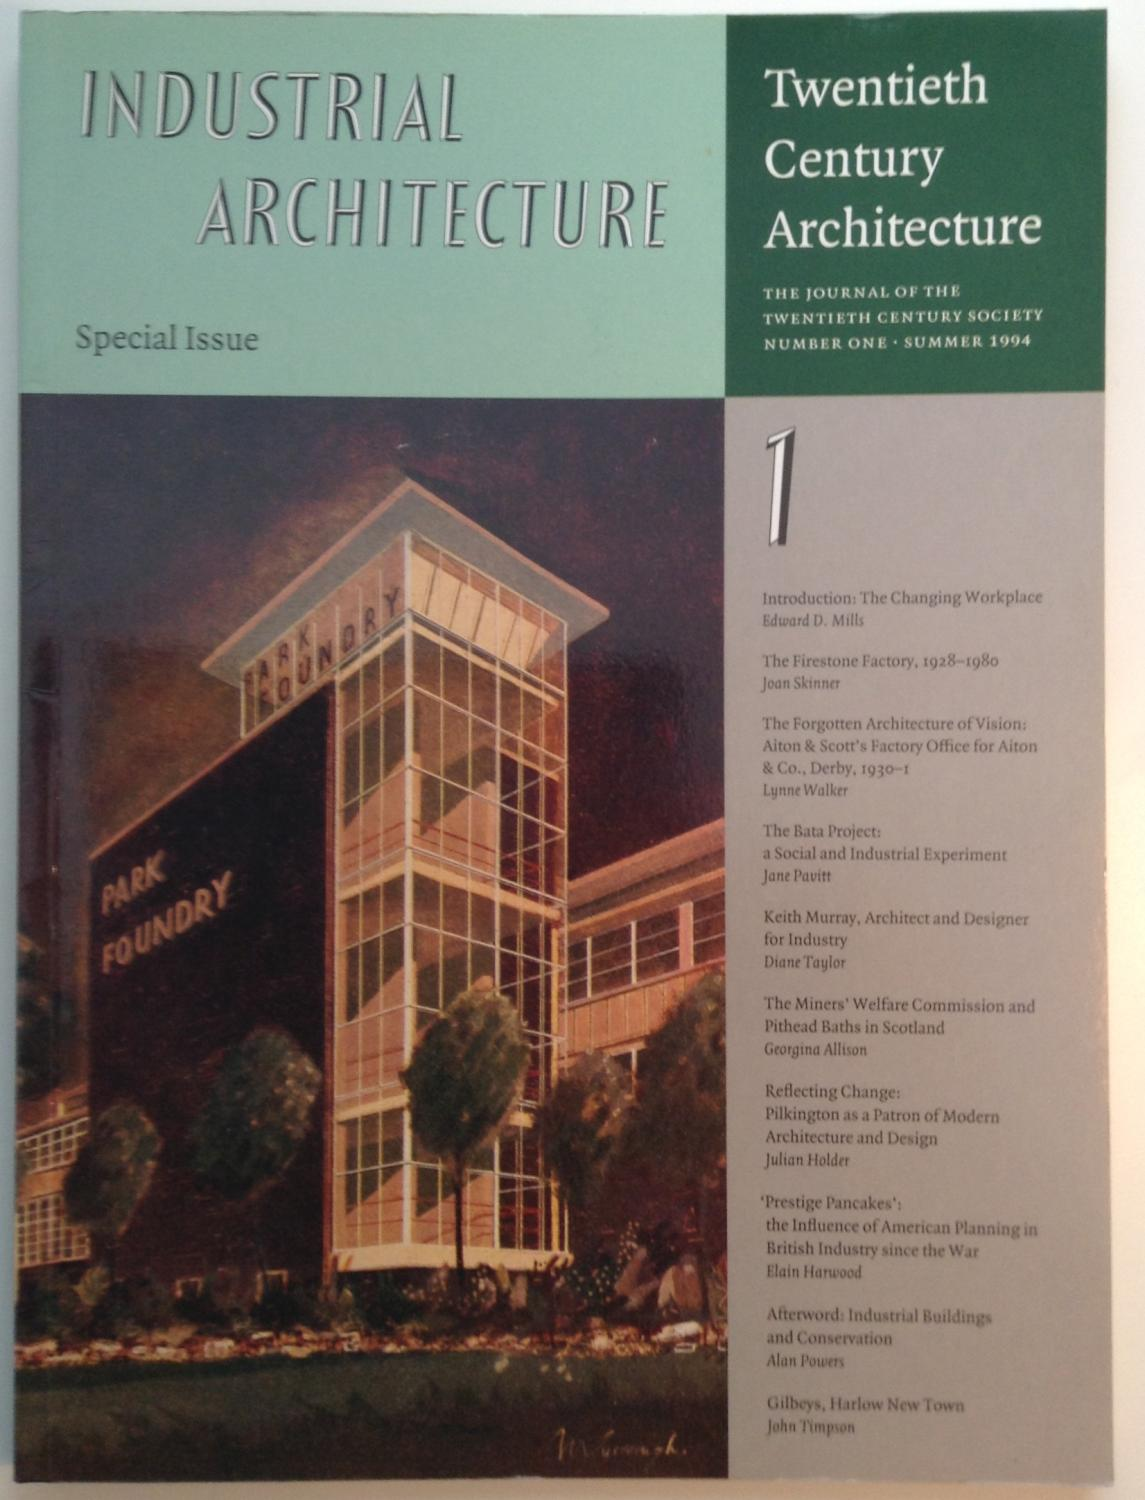 Download +500 Best Architecture Books Legally free!